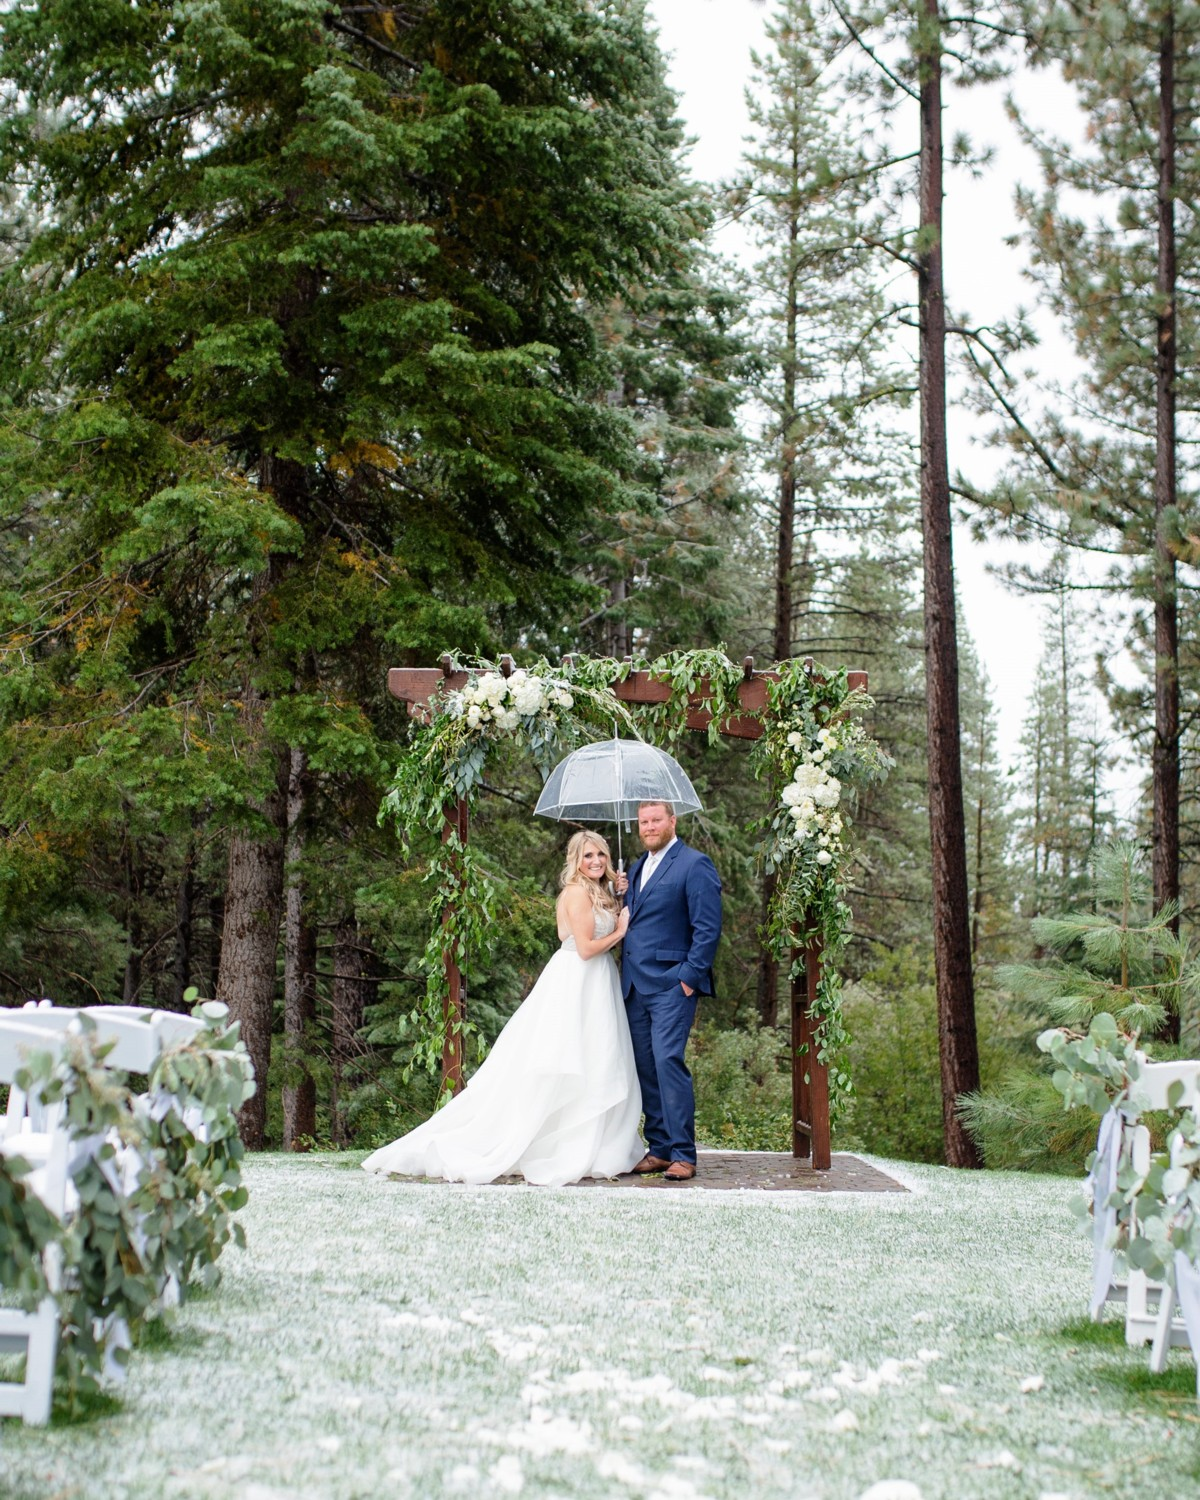 Marcella Camille Events - Lake Tahoe wedding planner - couple in ceremony area